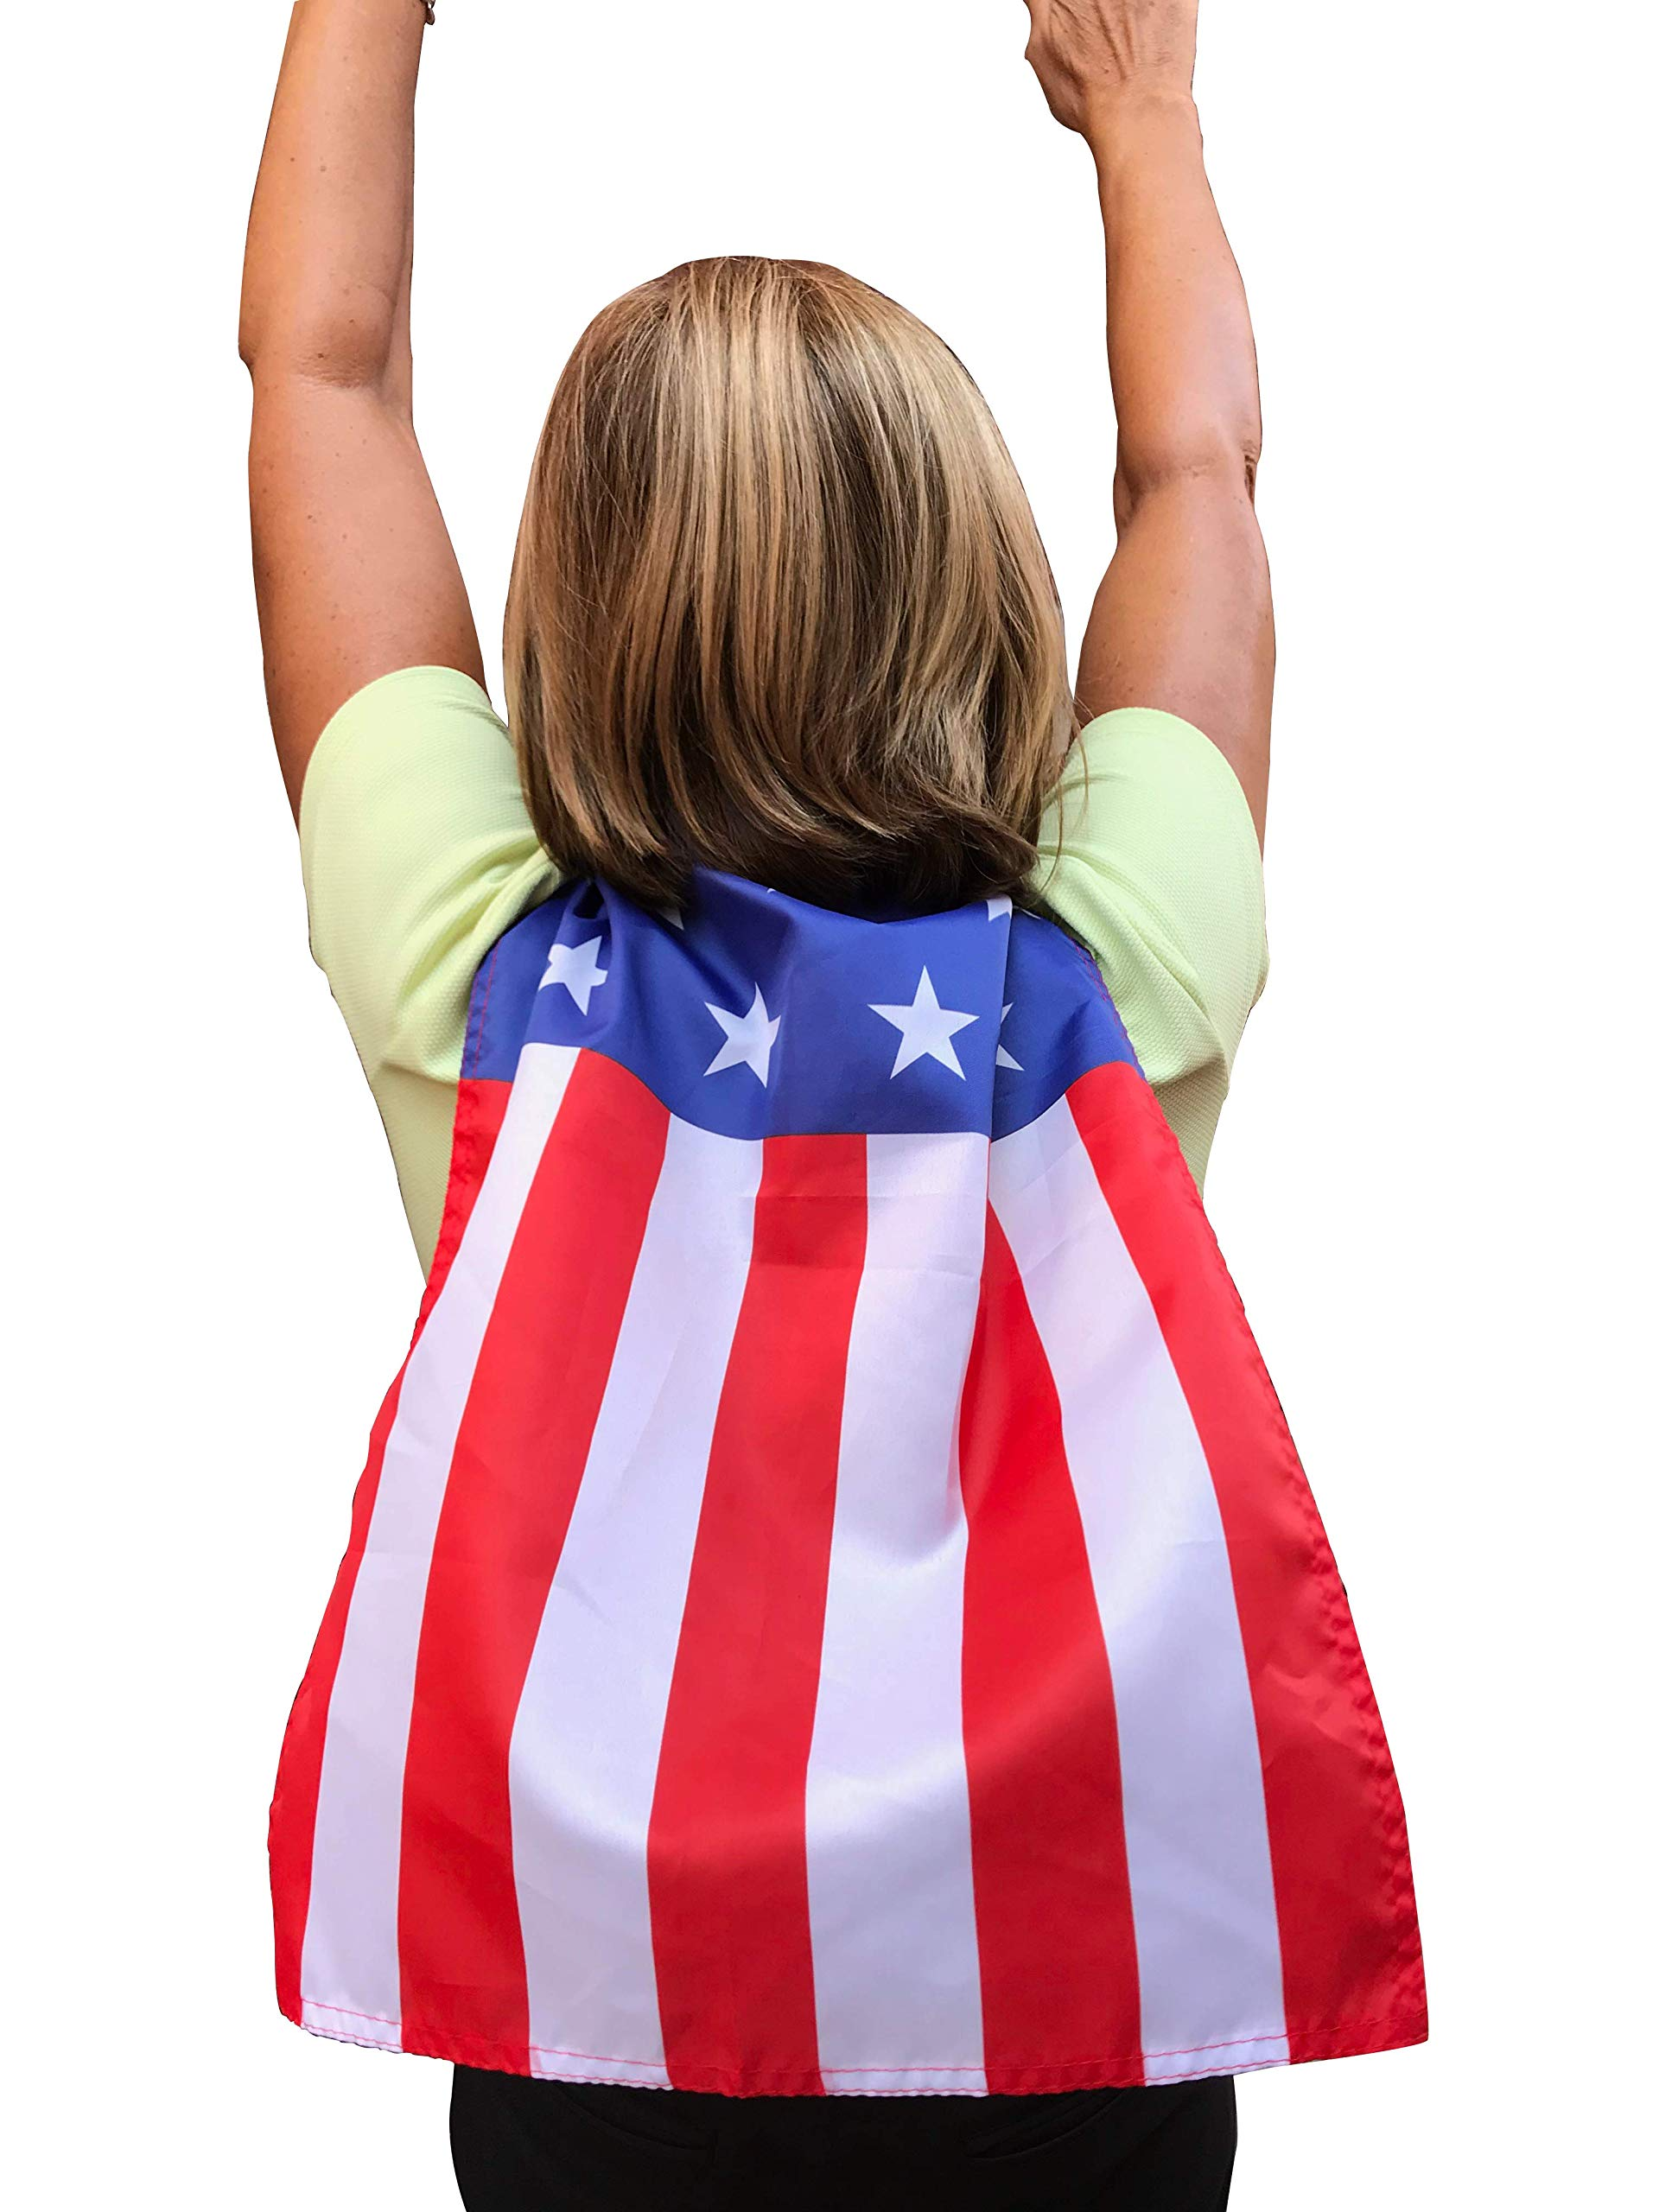 Freedom Capes American Flag Cape (Mini Cape) by Freedom Capes